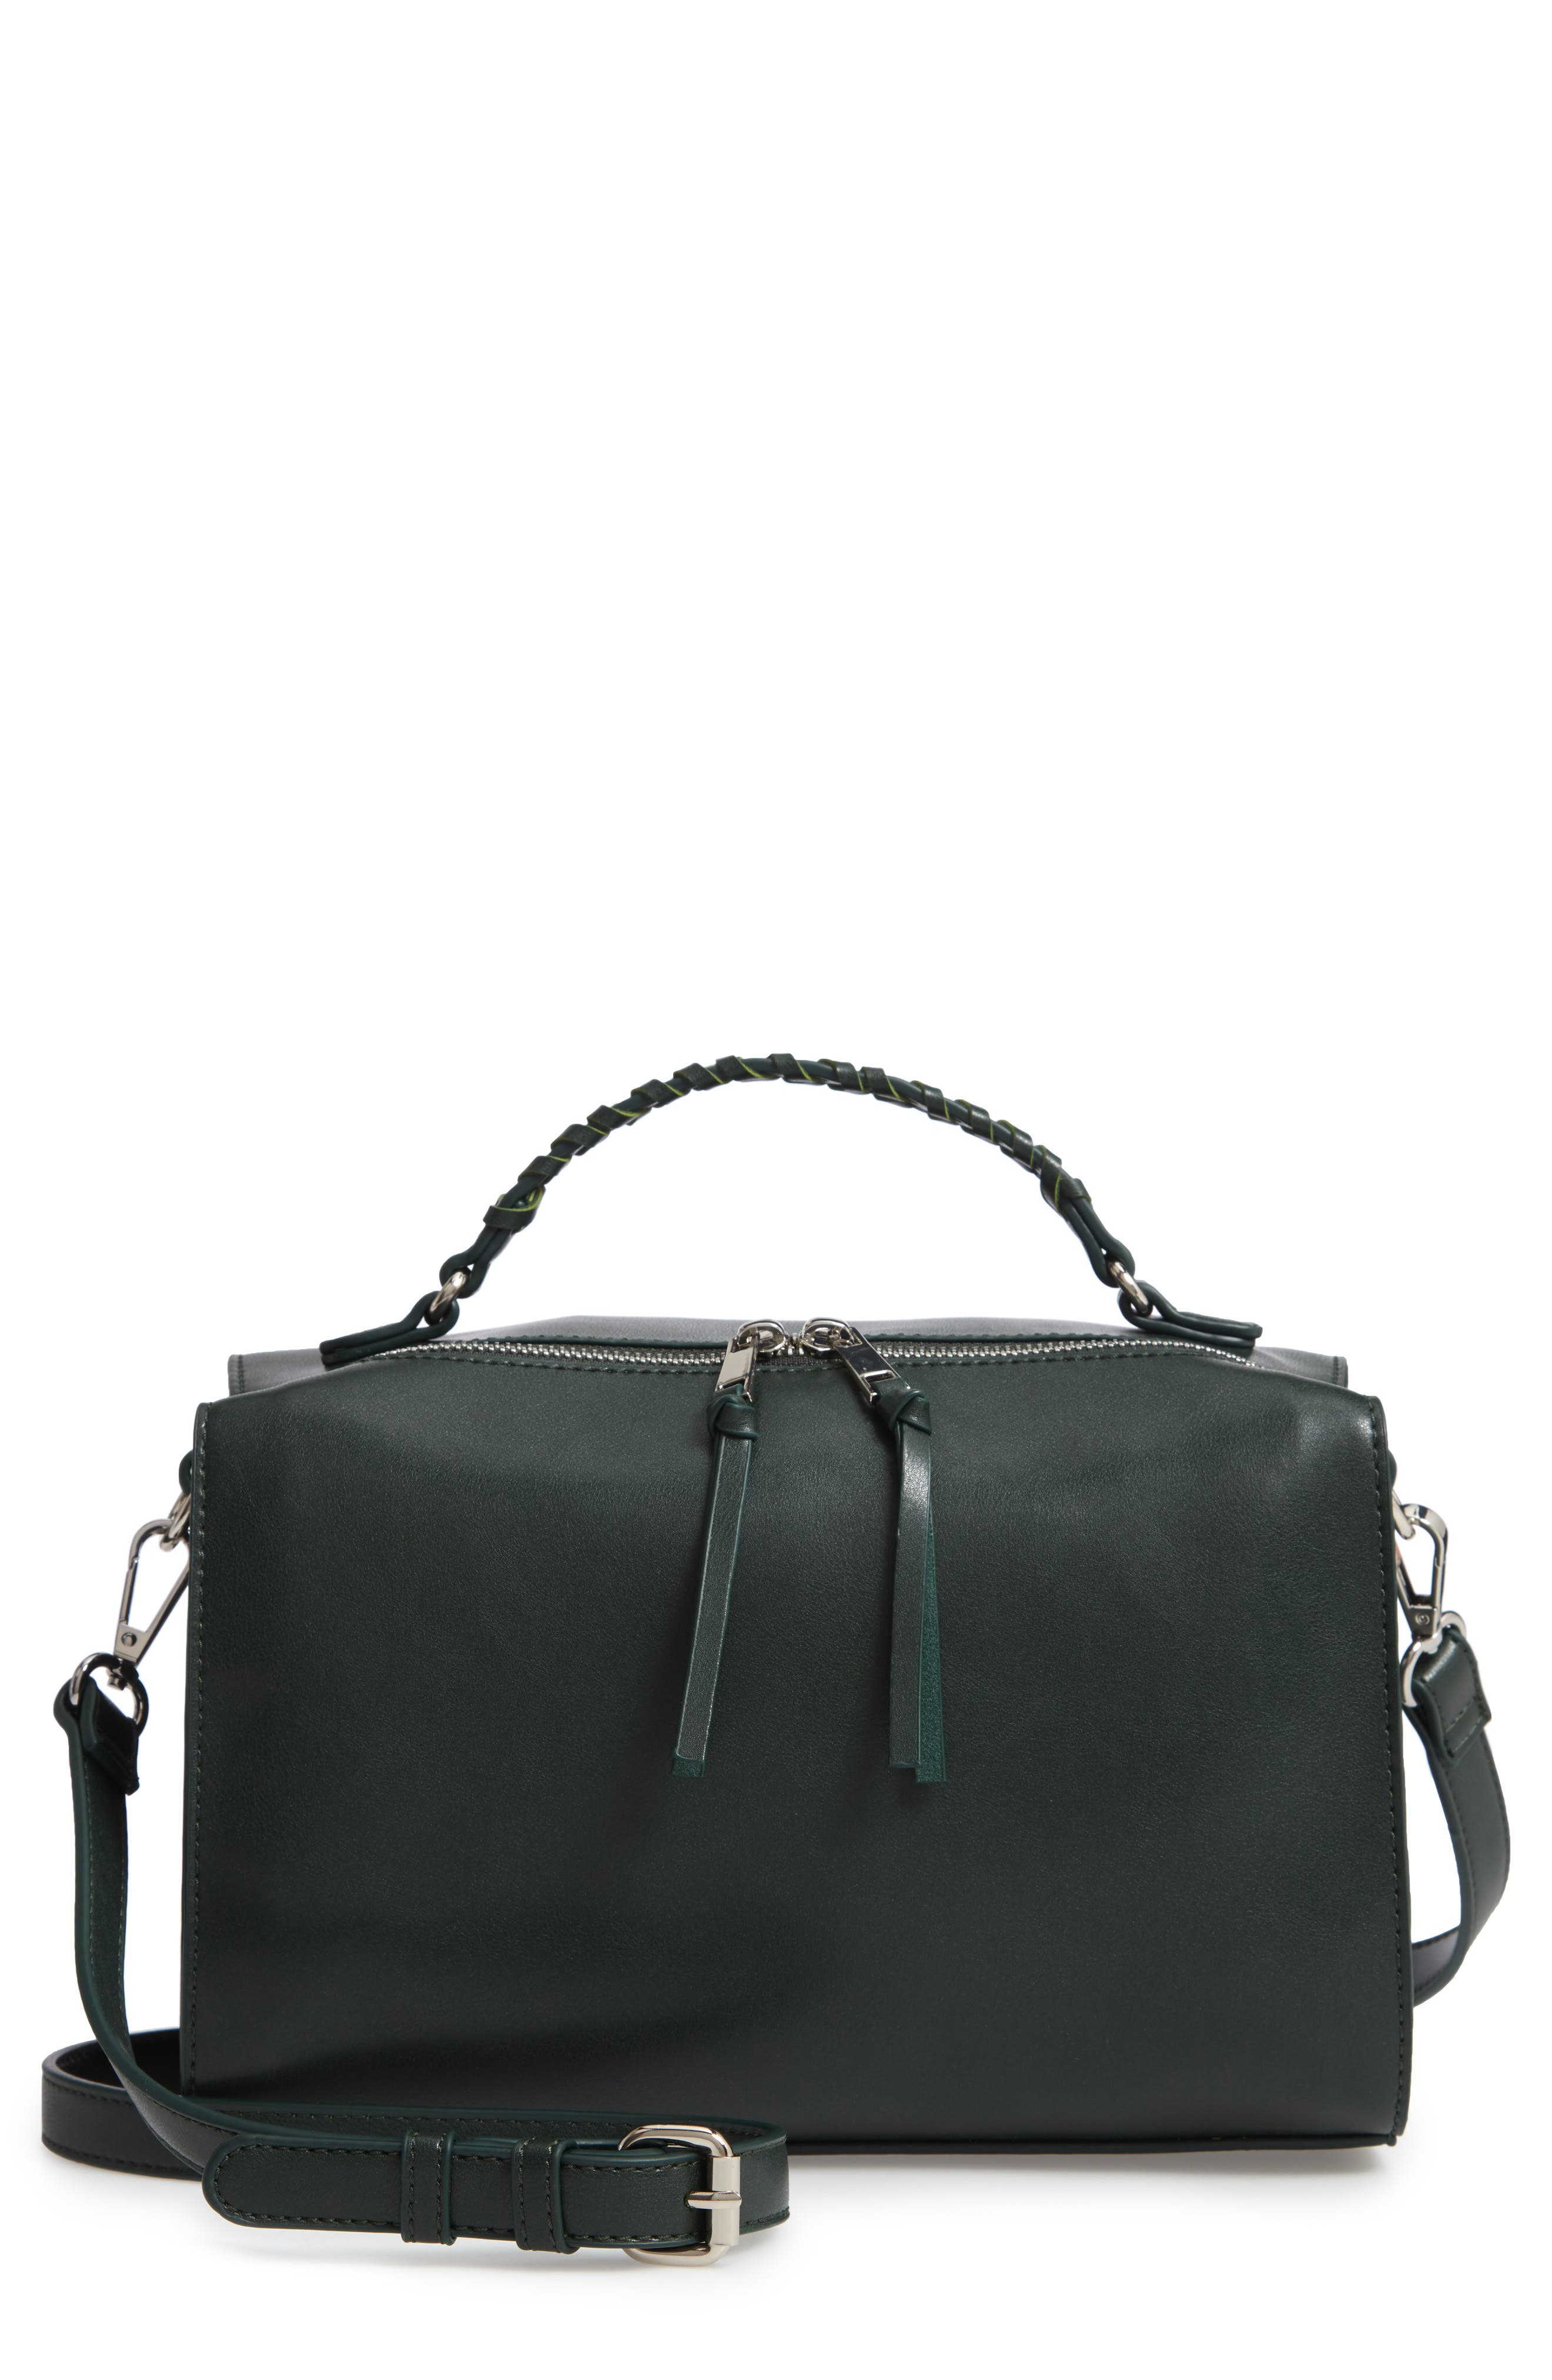 Whipstitch Handle Faux Leather Crossbody Bag,                             Main thumbnail 1, color,                             DARK GREEN